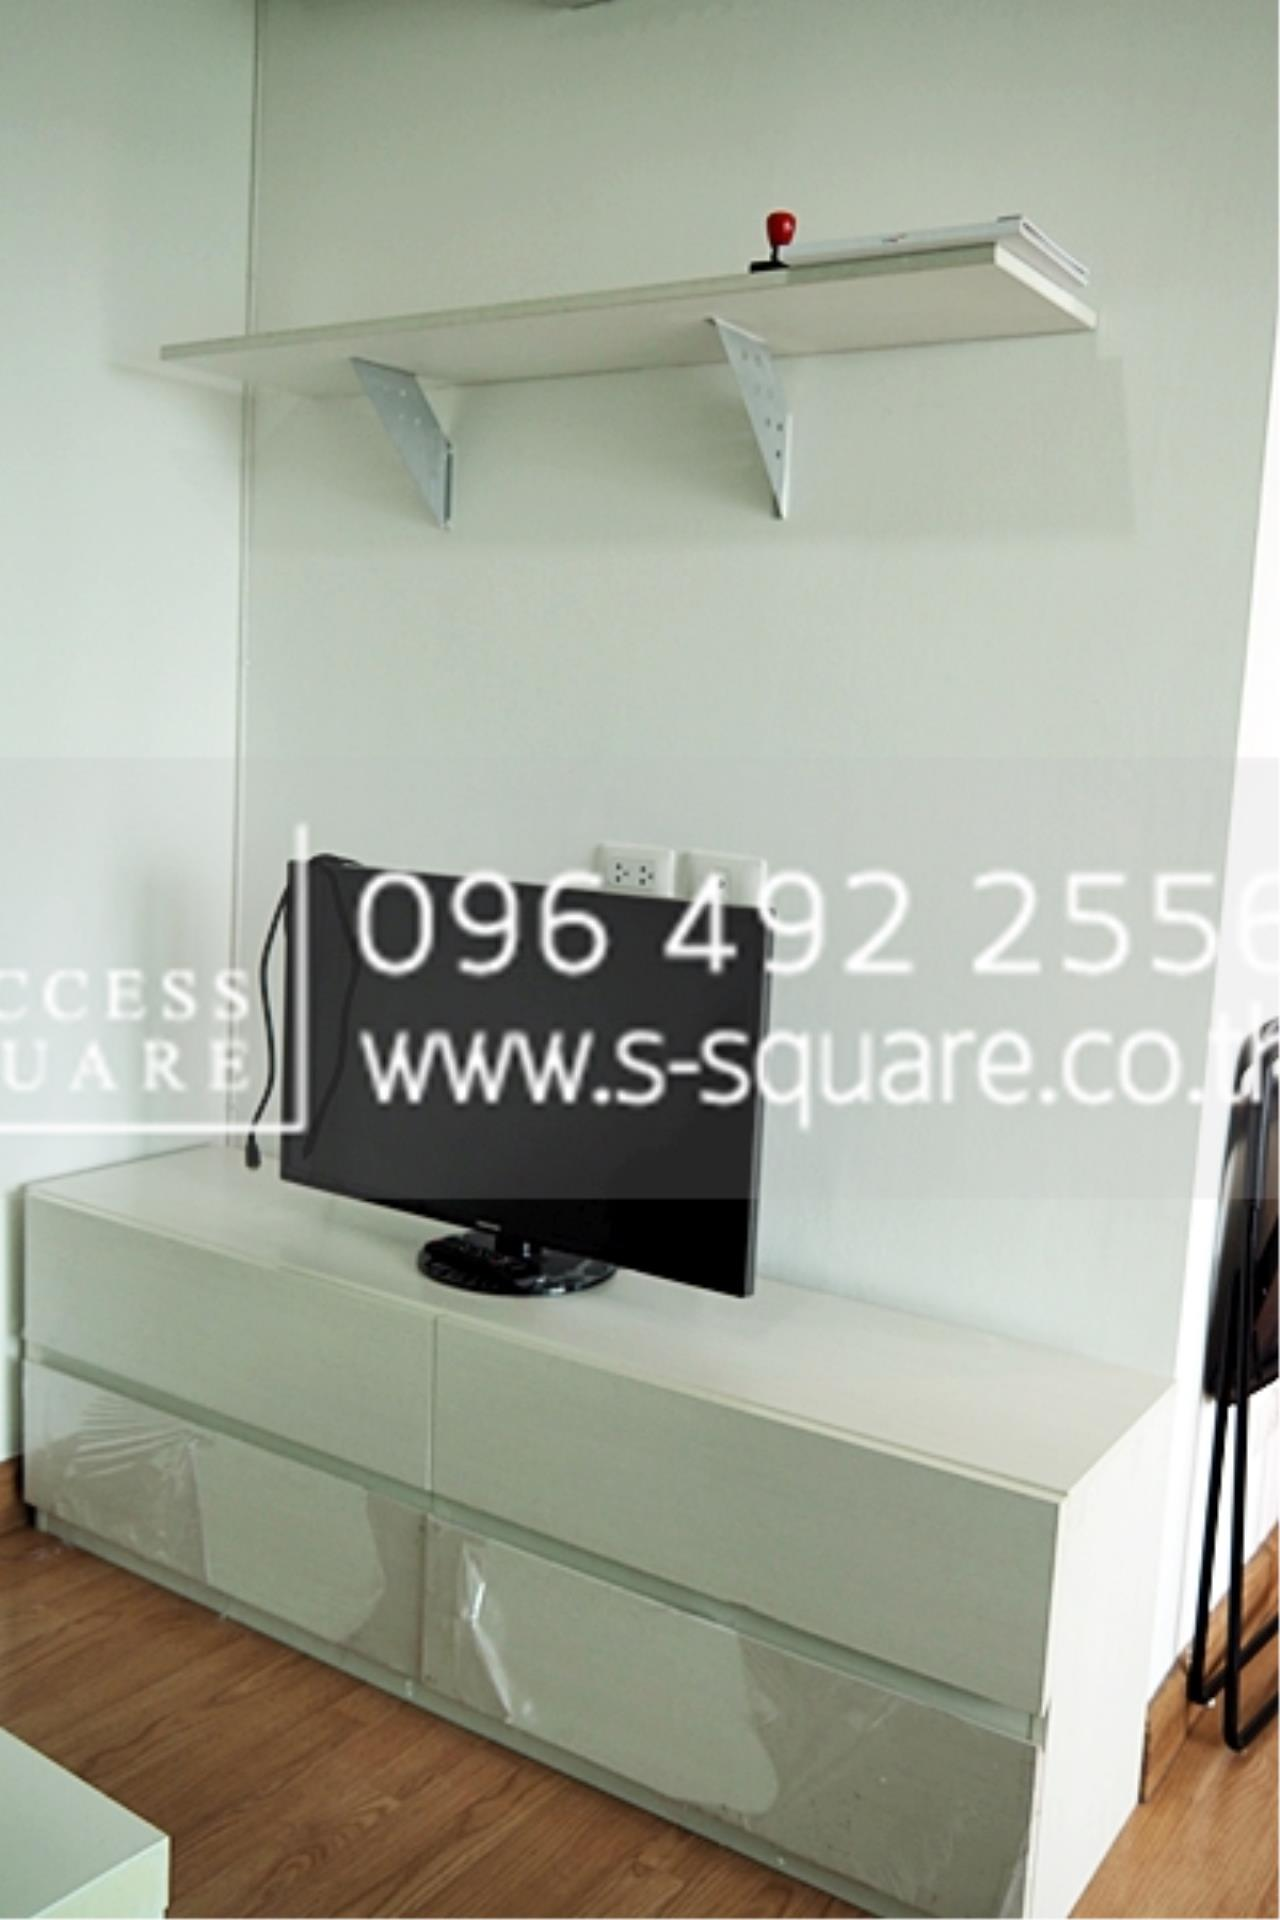 Success Square Agency's Aspire Rama 4, Condo For Rent 1 Bedrooms 5